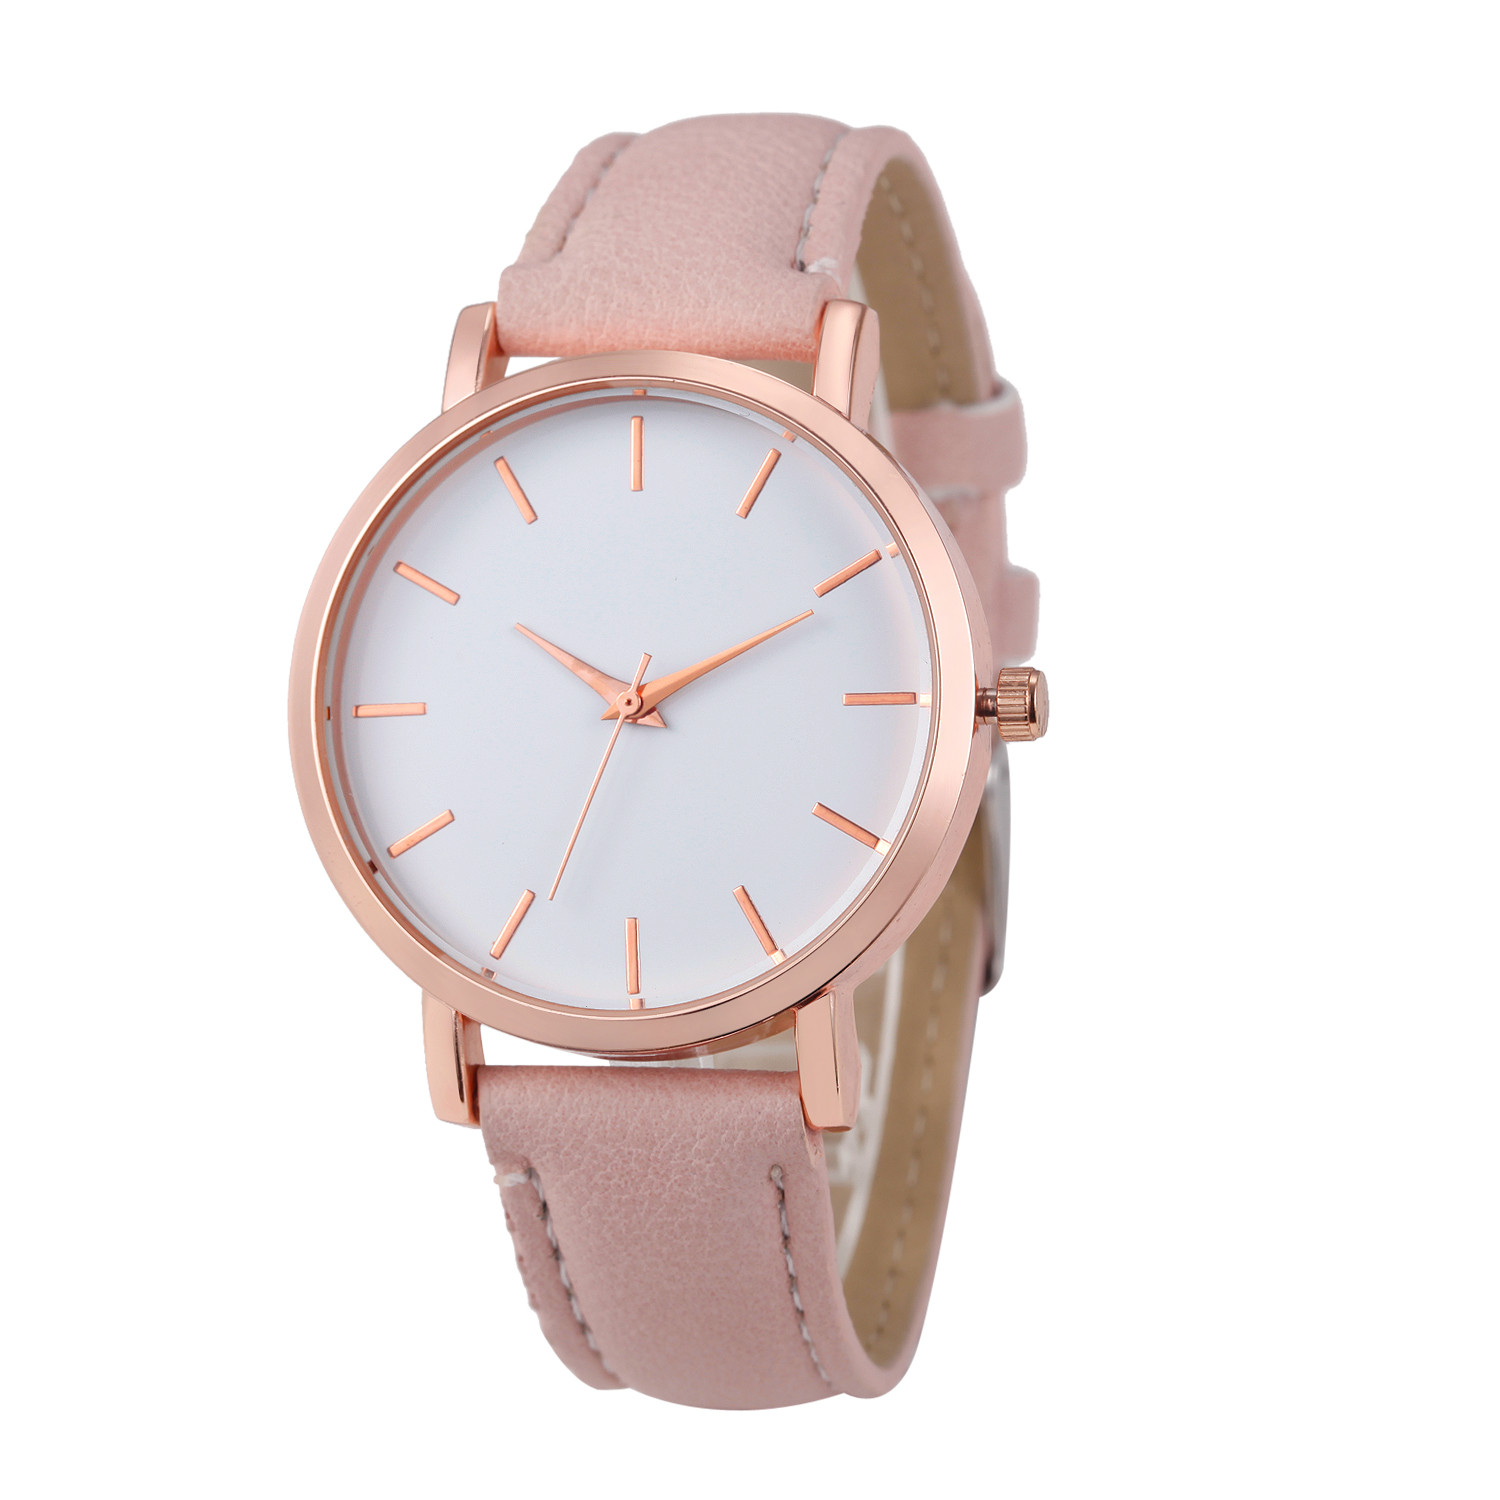 Fashion Lady Watch with Pink Leather Strap